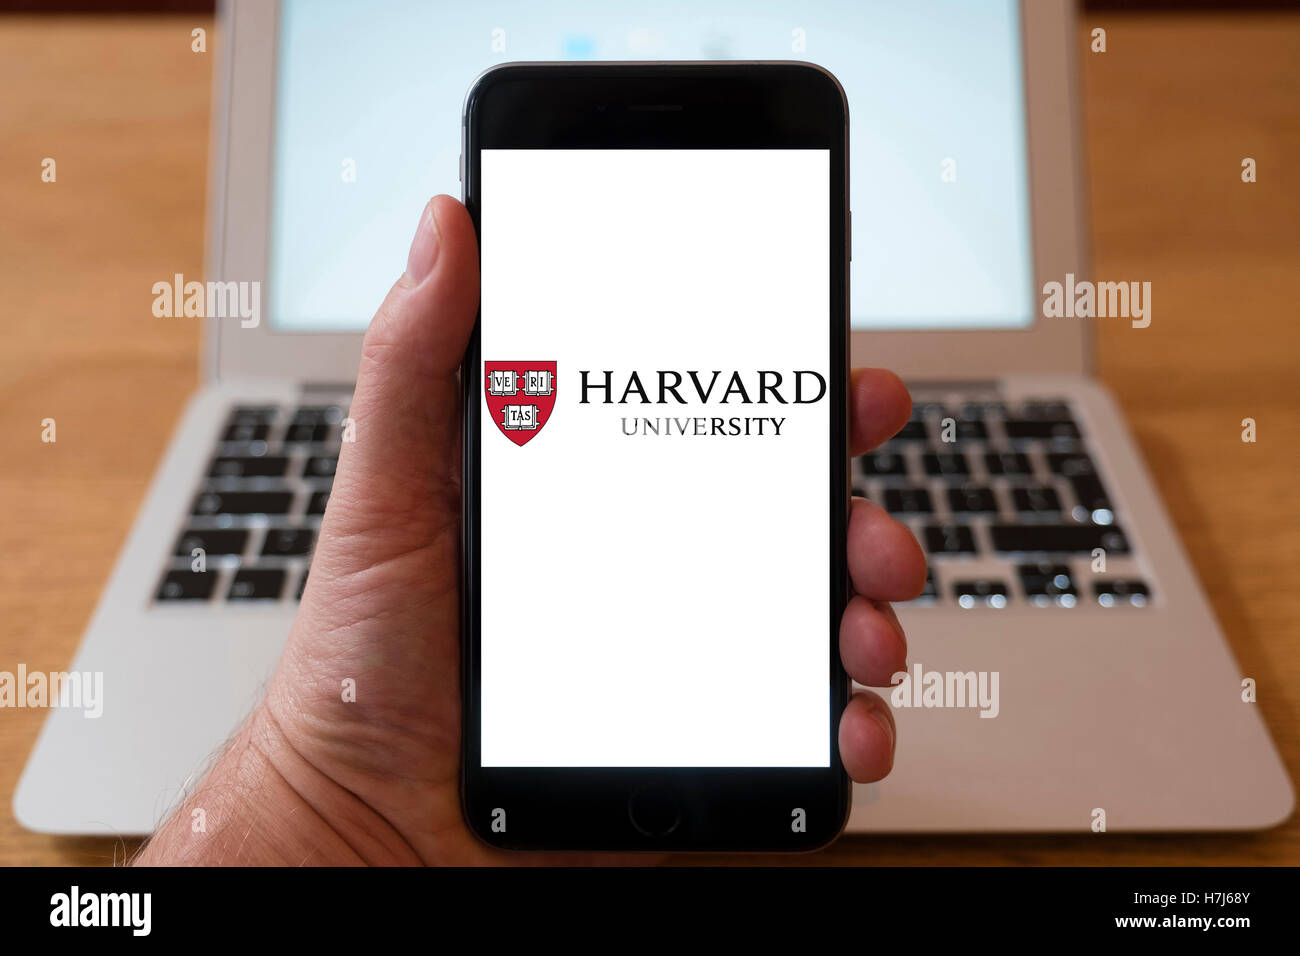 Using iPhone smart phone to display logo of Harvard University - Stock Image